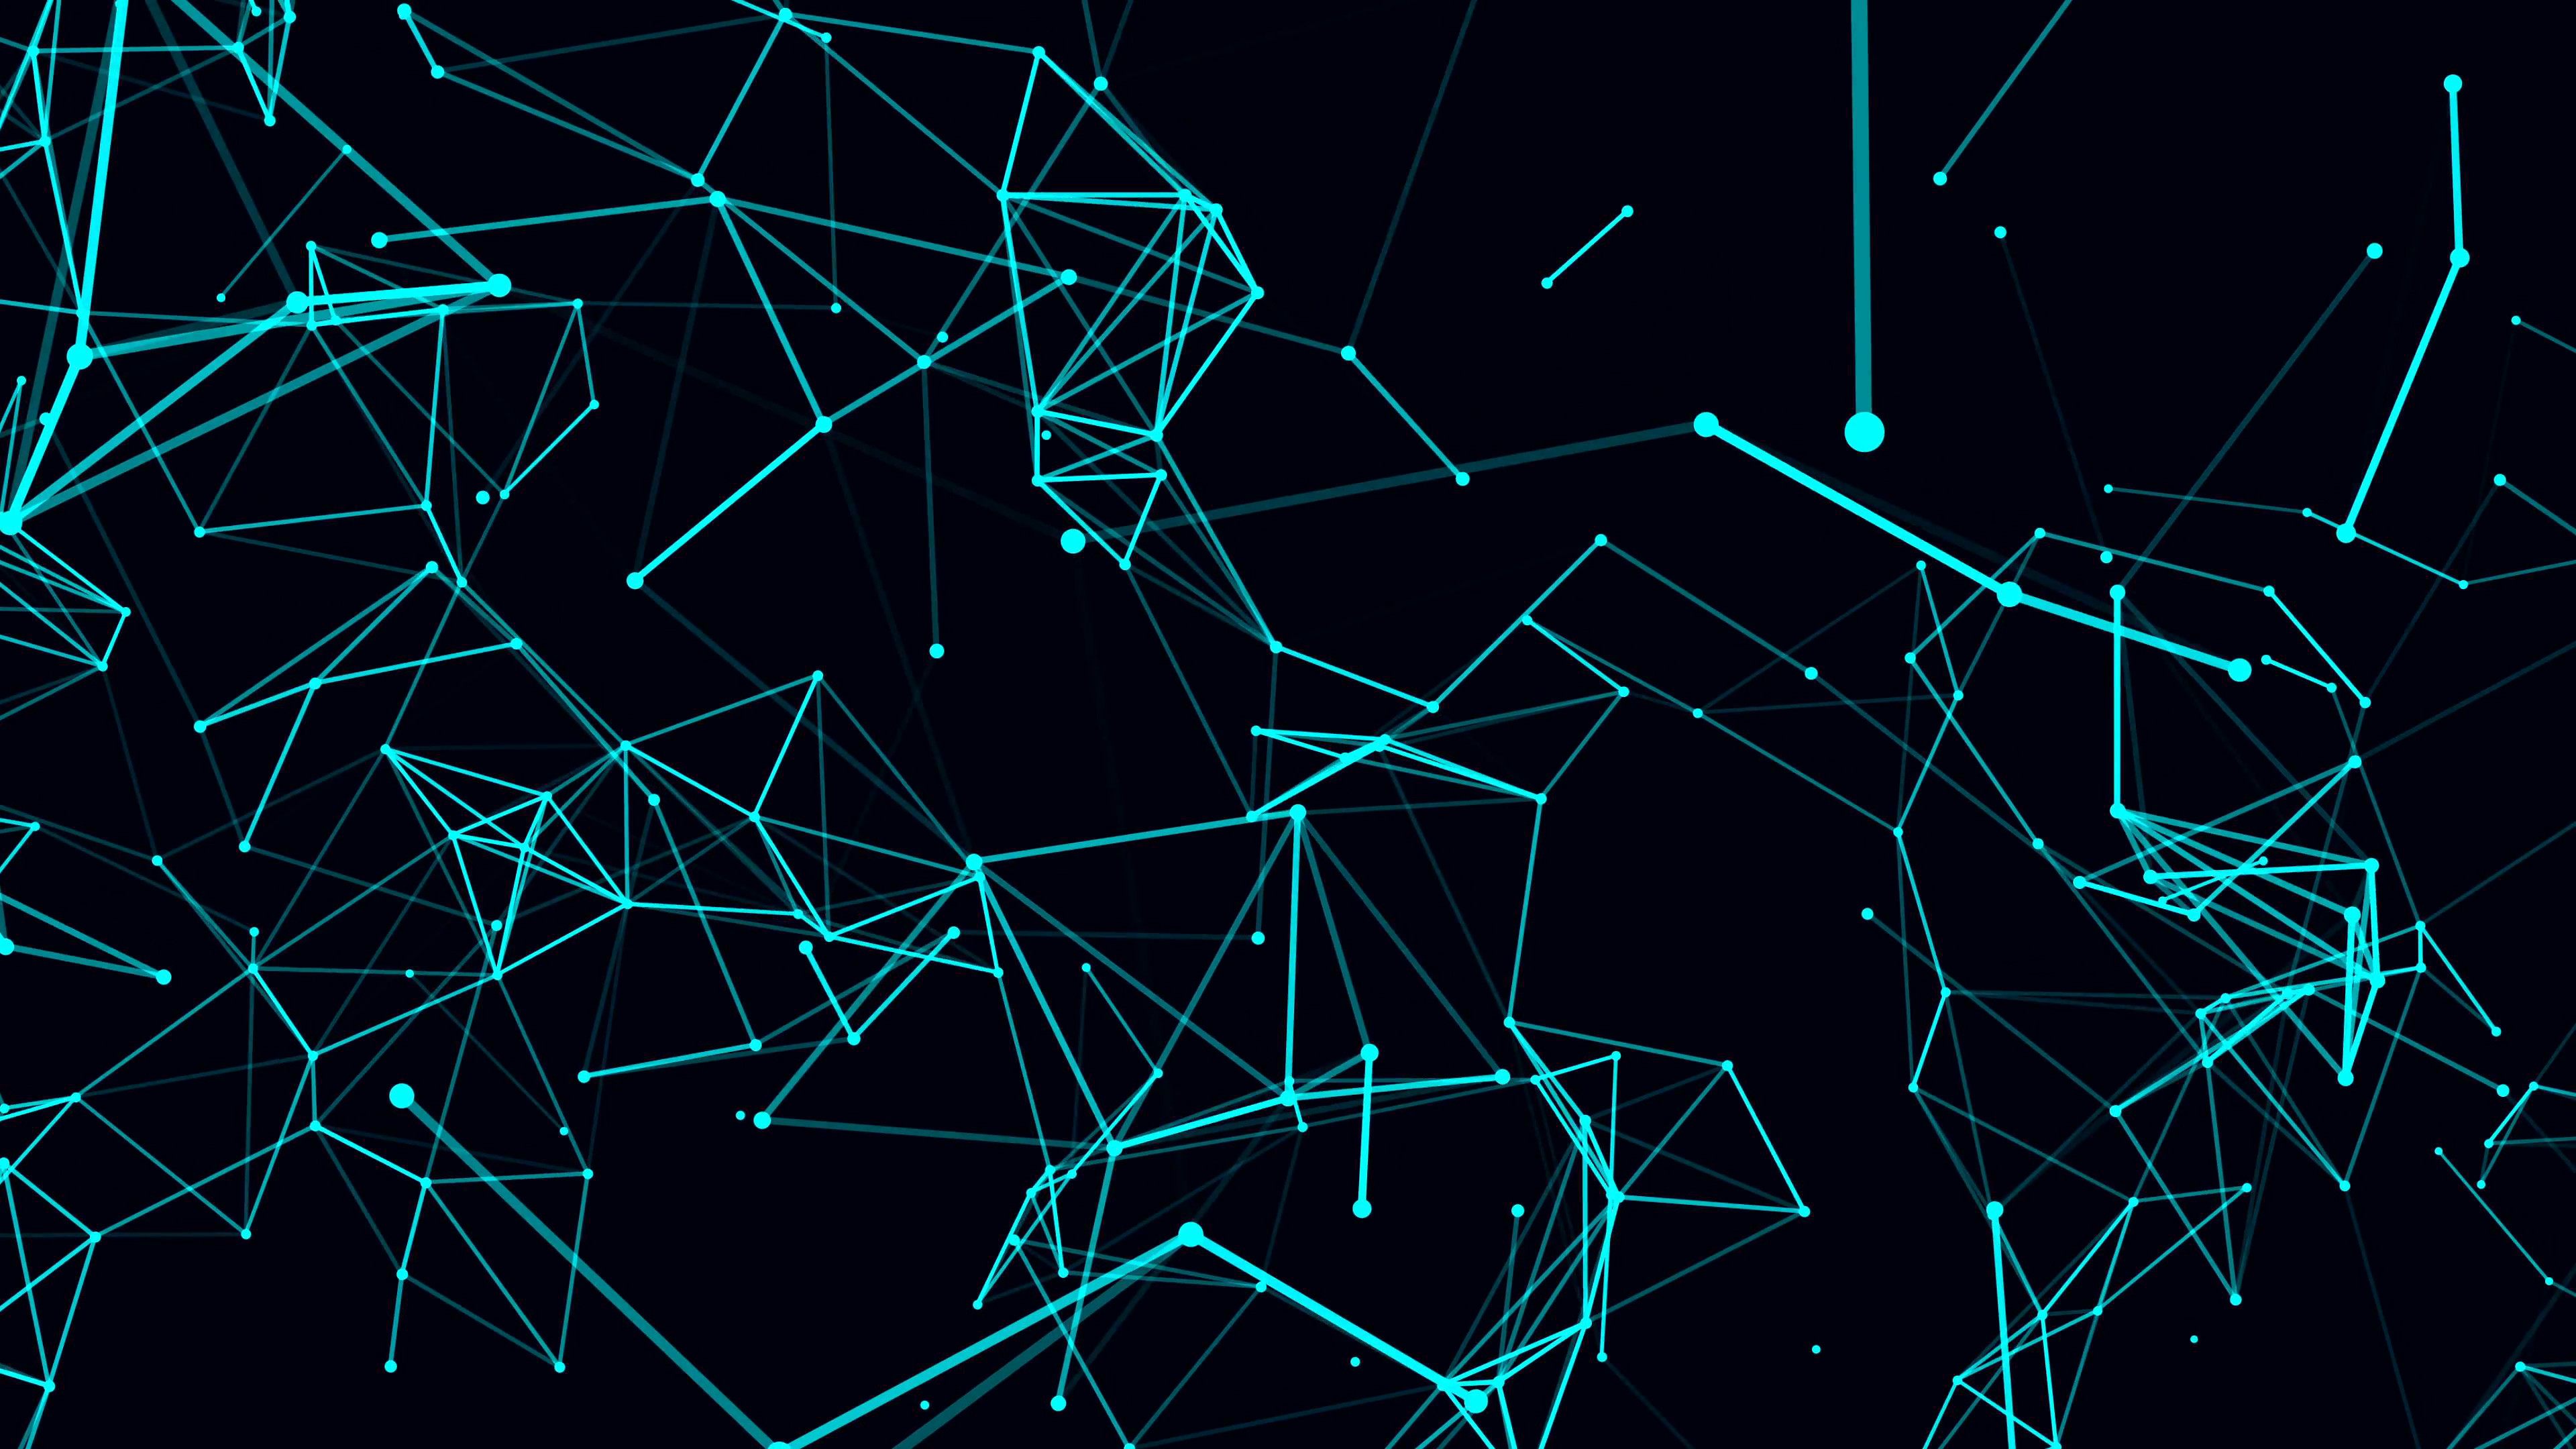 3840x2160 Futuristic technology background. loop abstract line and polygon animation.  4k